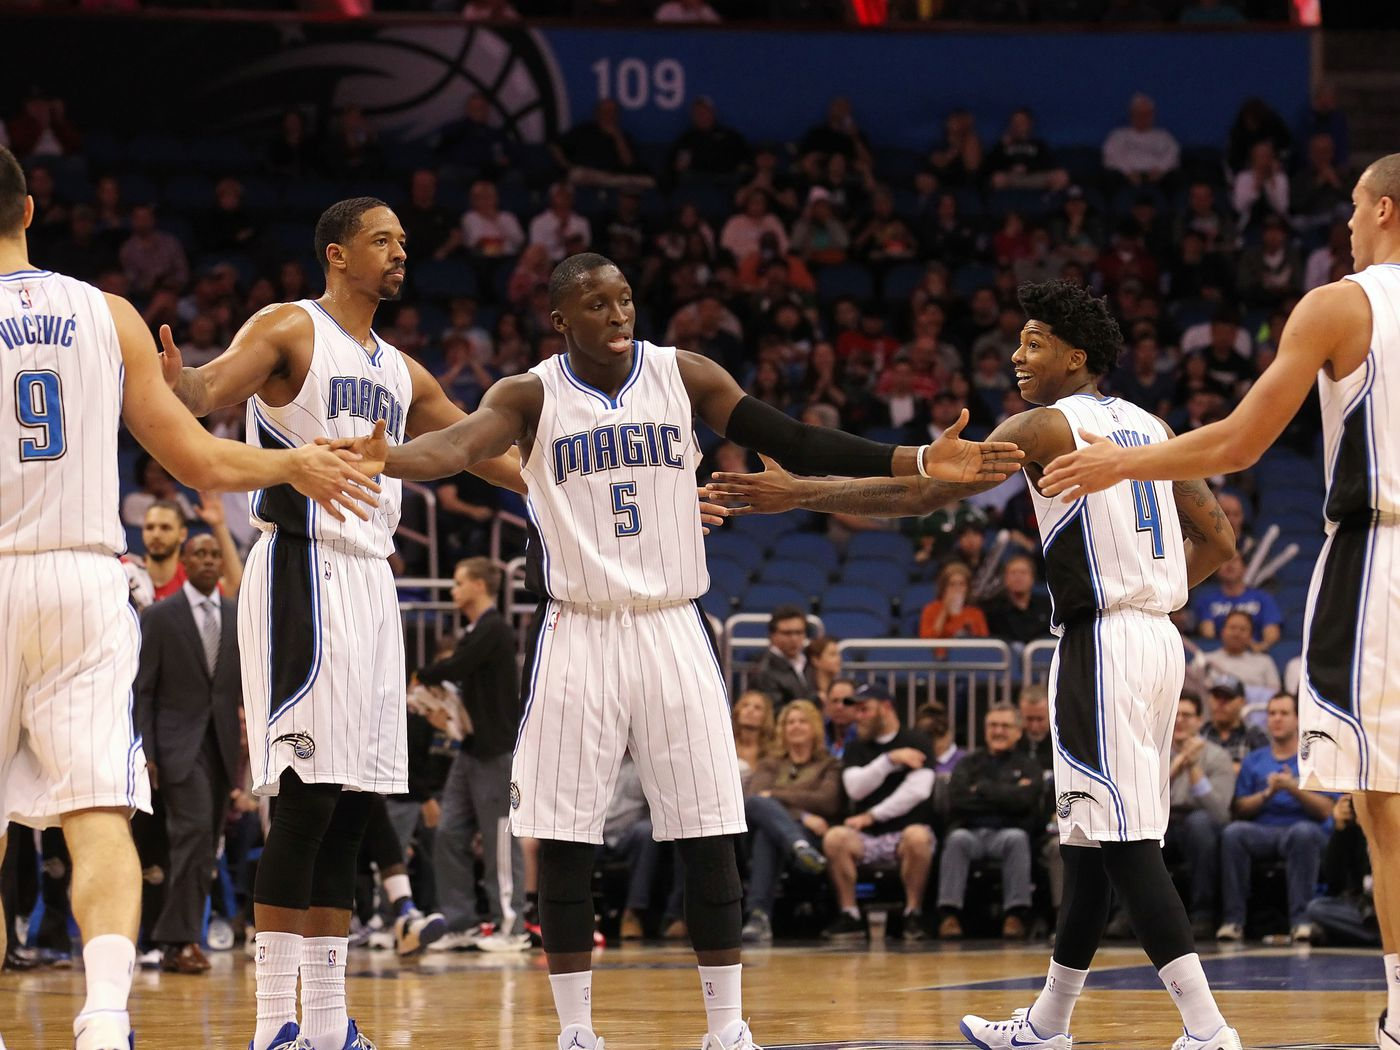 343e1aae40f Orlando Magic 2015 roster  This young core is poised to make a jump -  SBNation.com